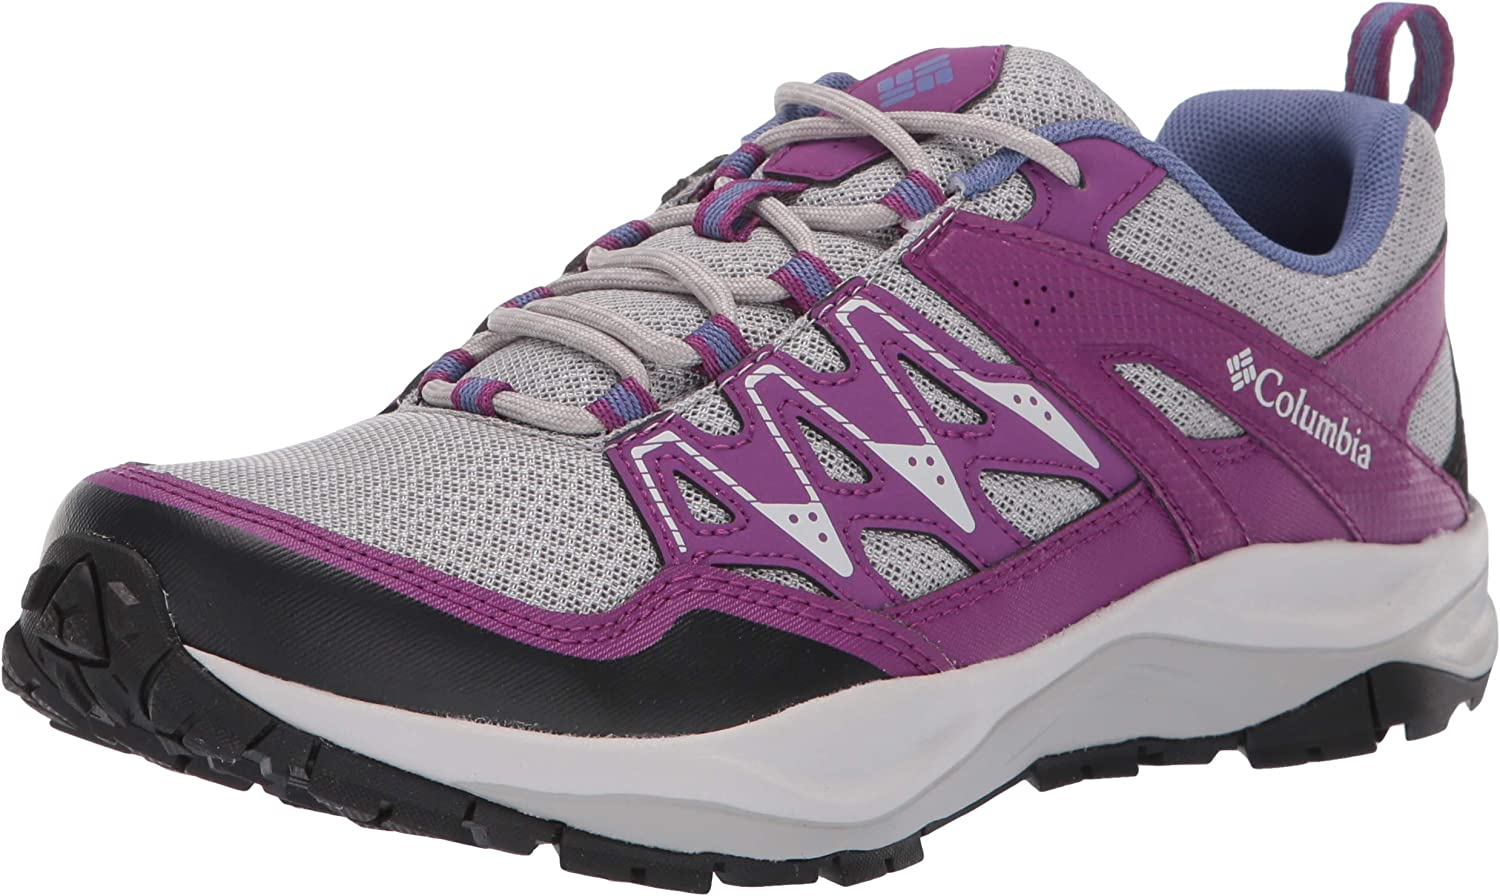 Columbia Women's WAYFINDER Hiking shoes